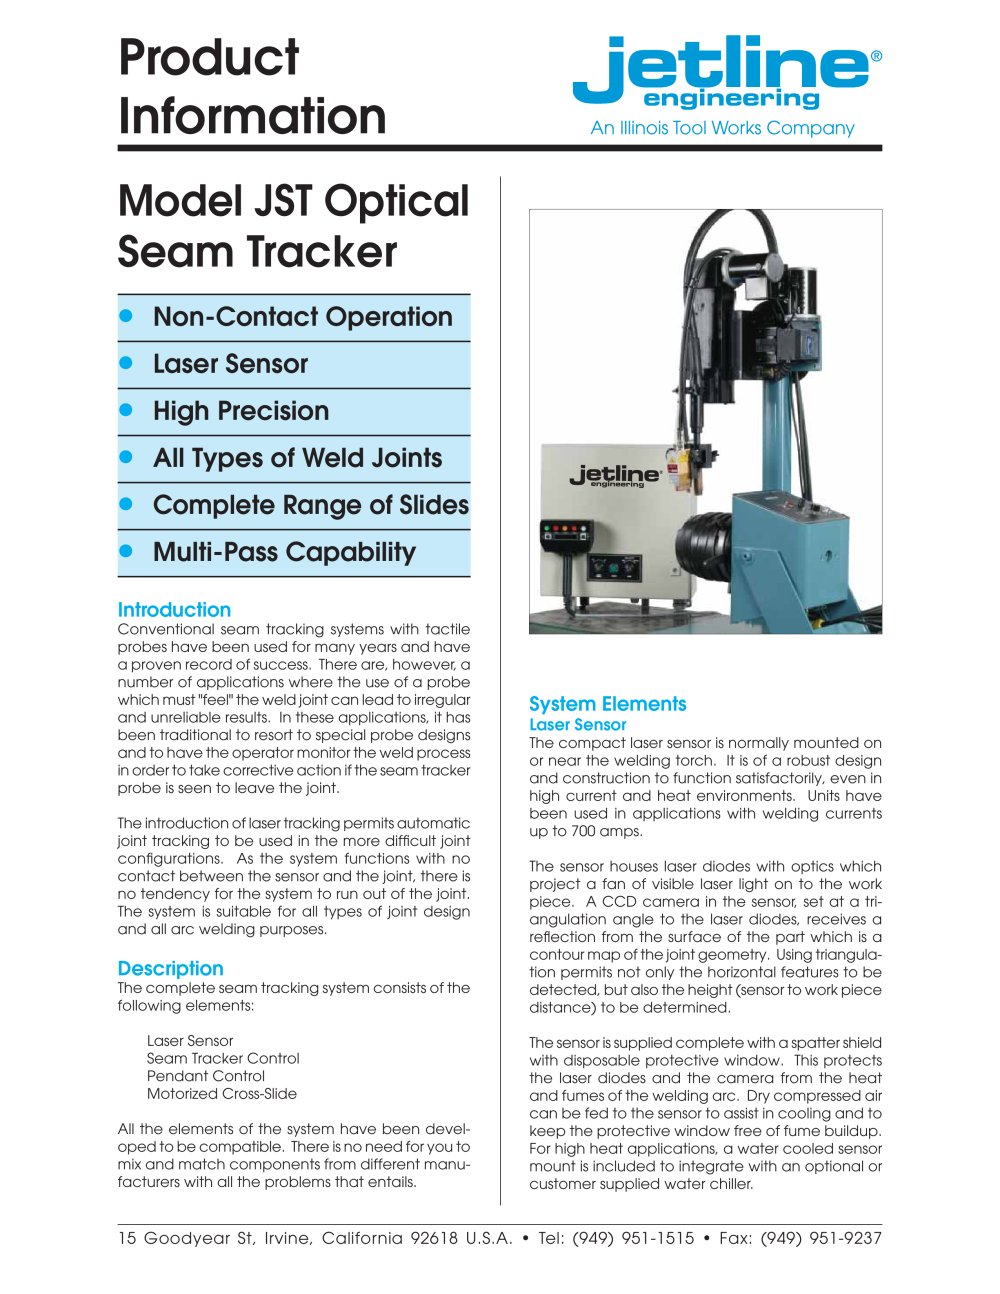 Jst Optical Laser Seam Tracker Jet Line Engineering Pdf Application Note Visiblelaser Driver Has Digitally Controlled Power 1 4 Pages